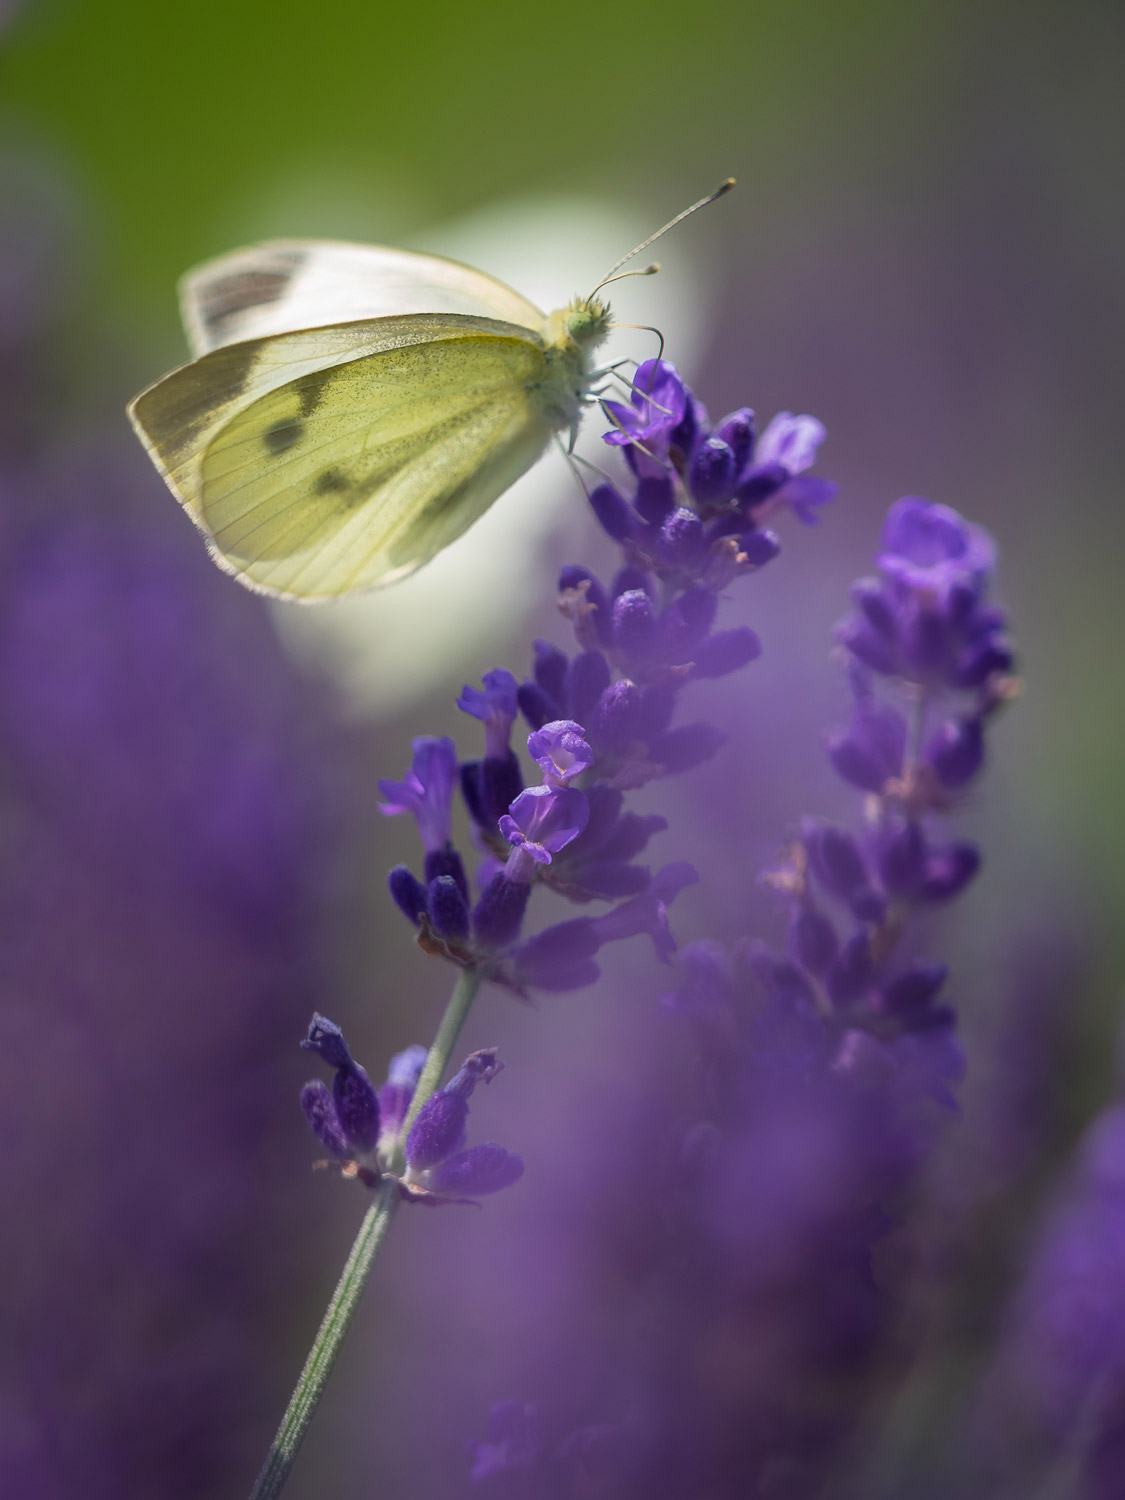 A green butterfly on a lavender